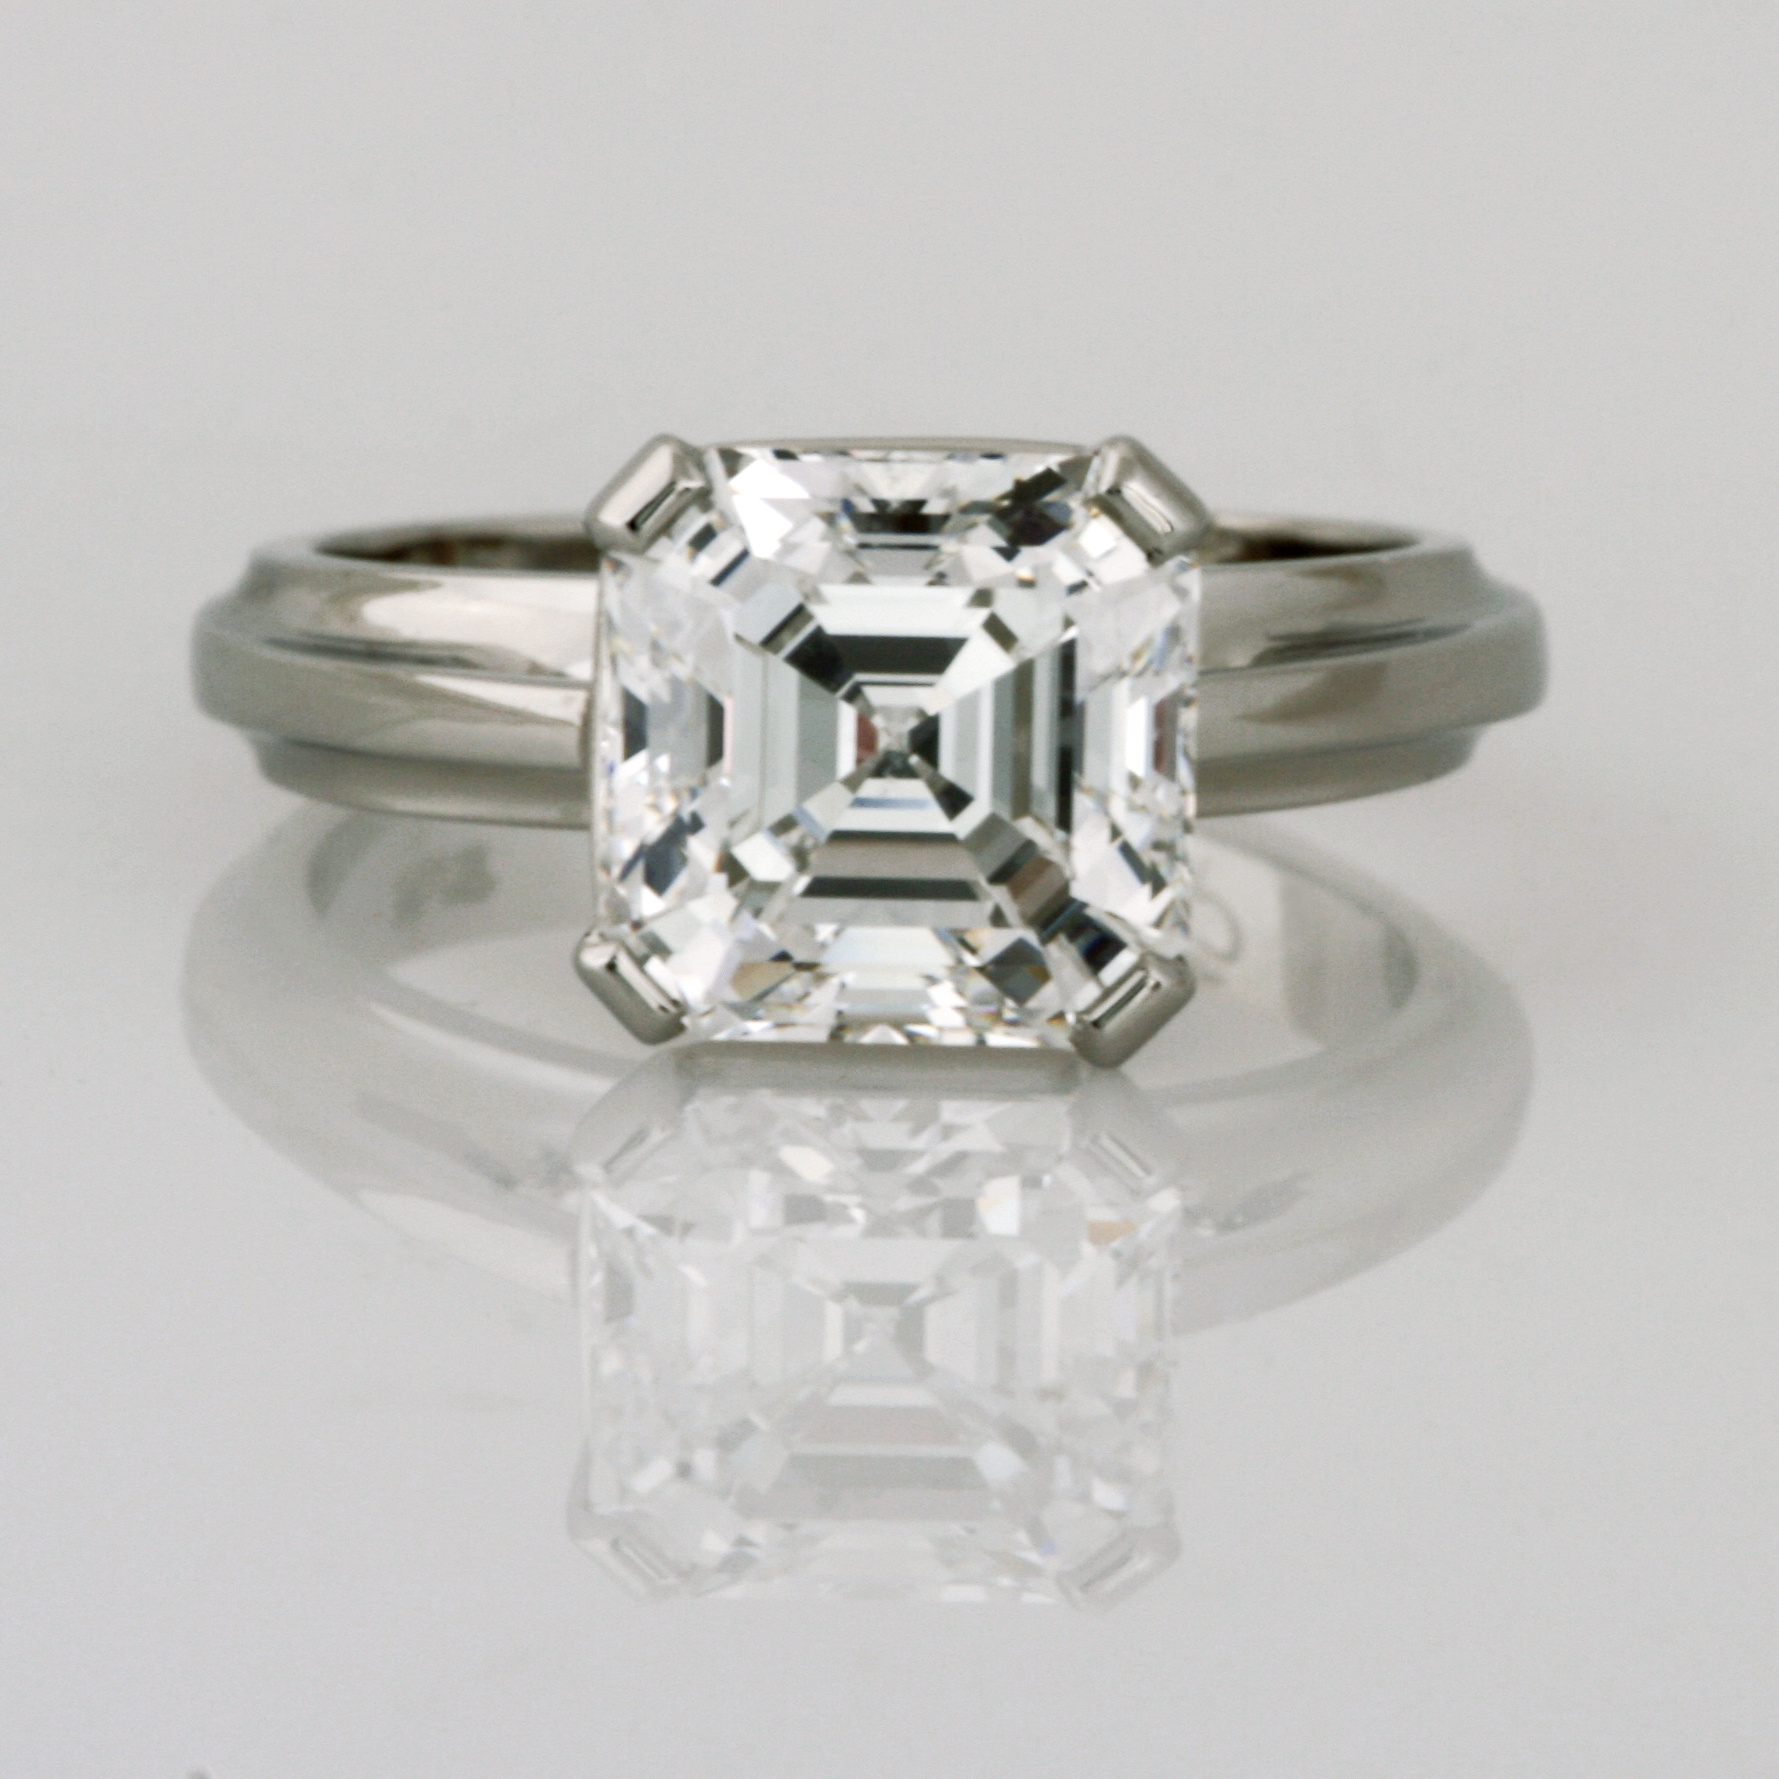 Handmade ladies platinum 4.34ct square emerald cut diamond ring